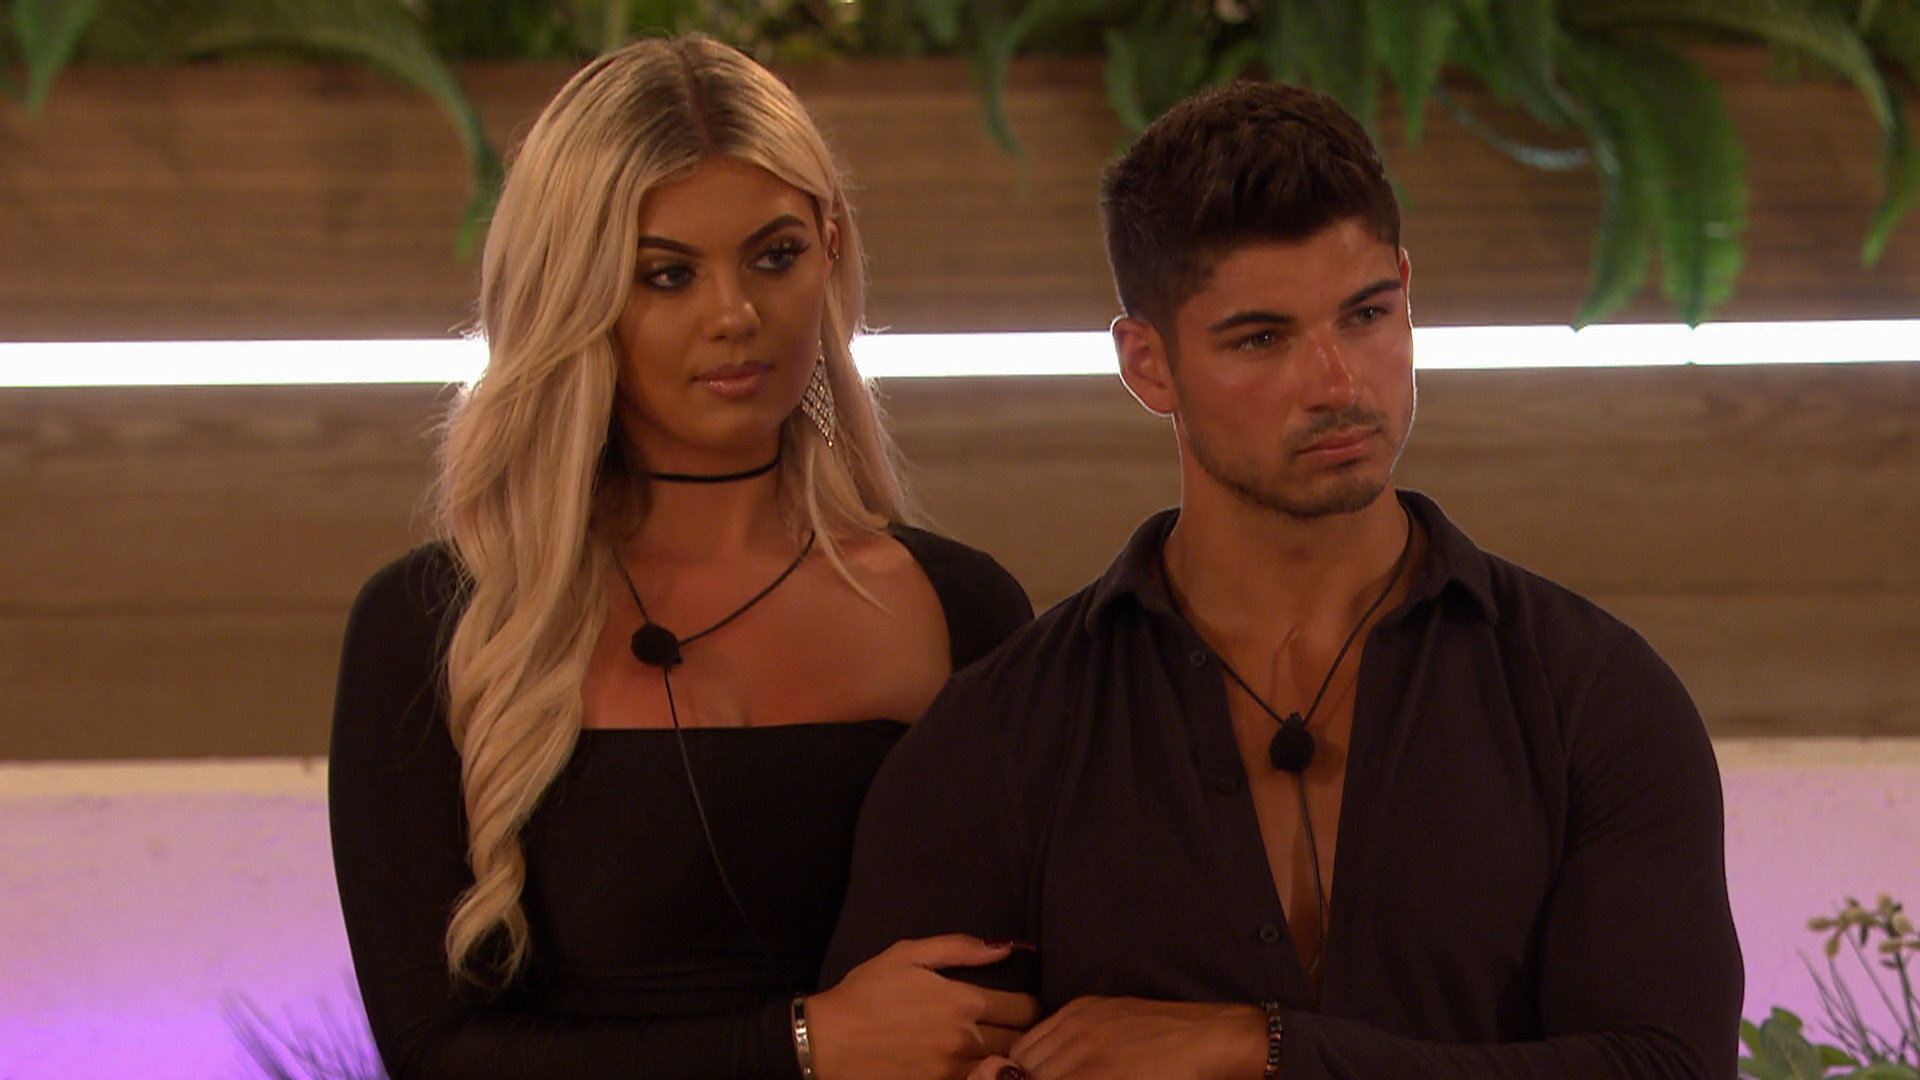 Love Island contestant Anton Danyluk responds to fans asking of his disappearance on one of the episodes earlier this month